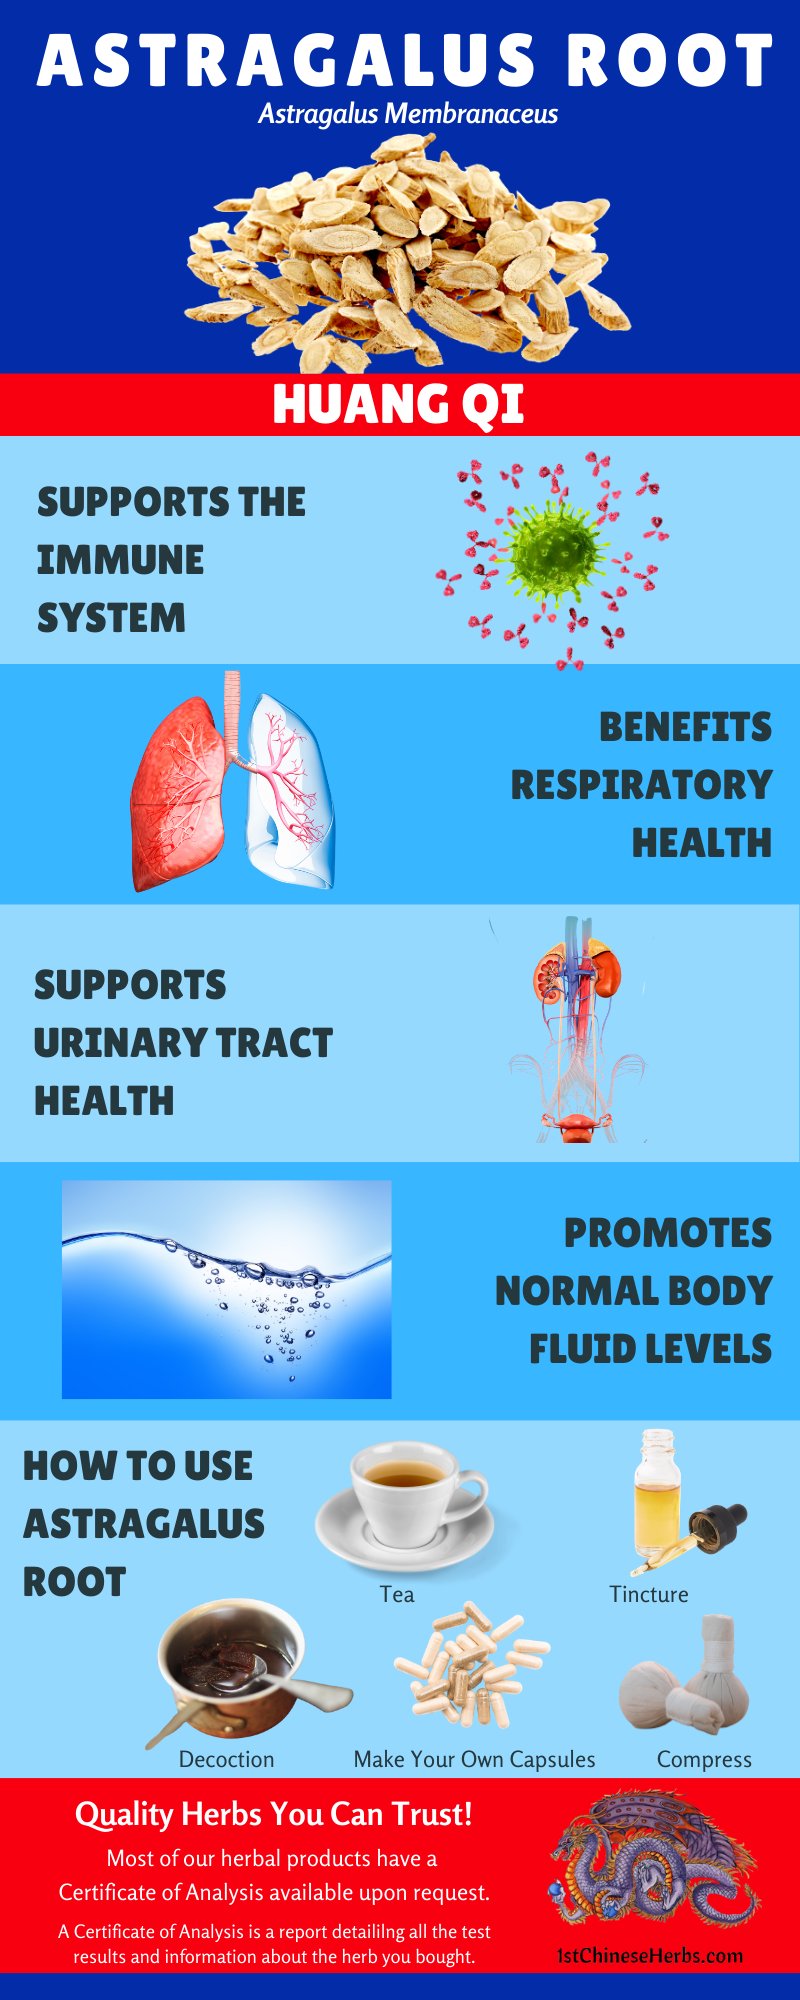 respiratory health astragalus root, urinary tract health astragalus root, immune support astragalus root, edema astragalus root